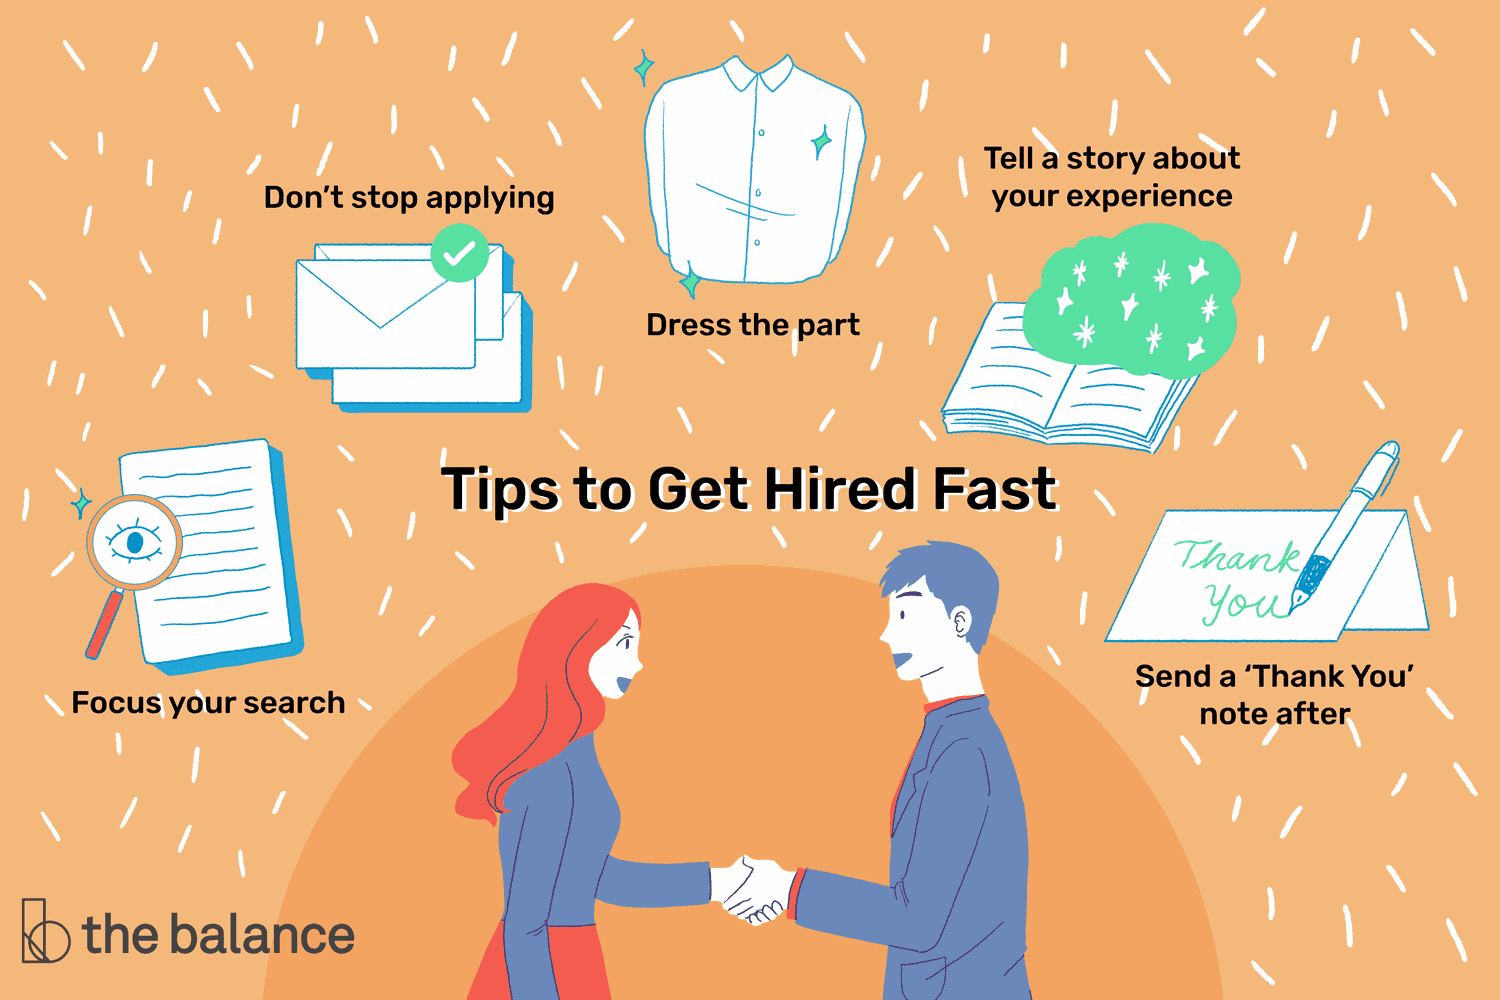 15 quick tips that will help you get hired fast